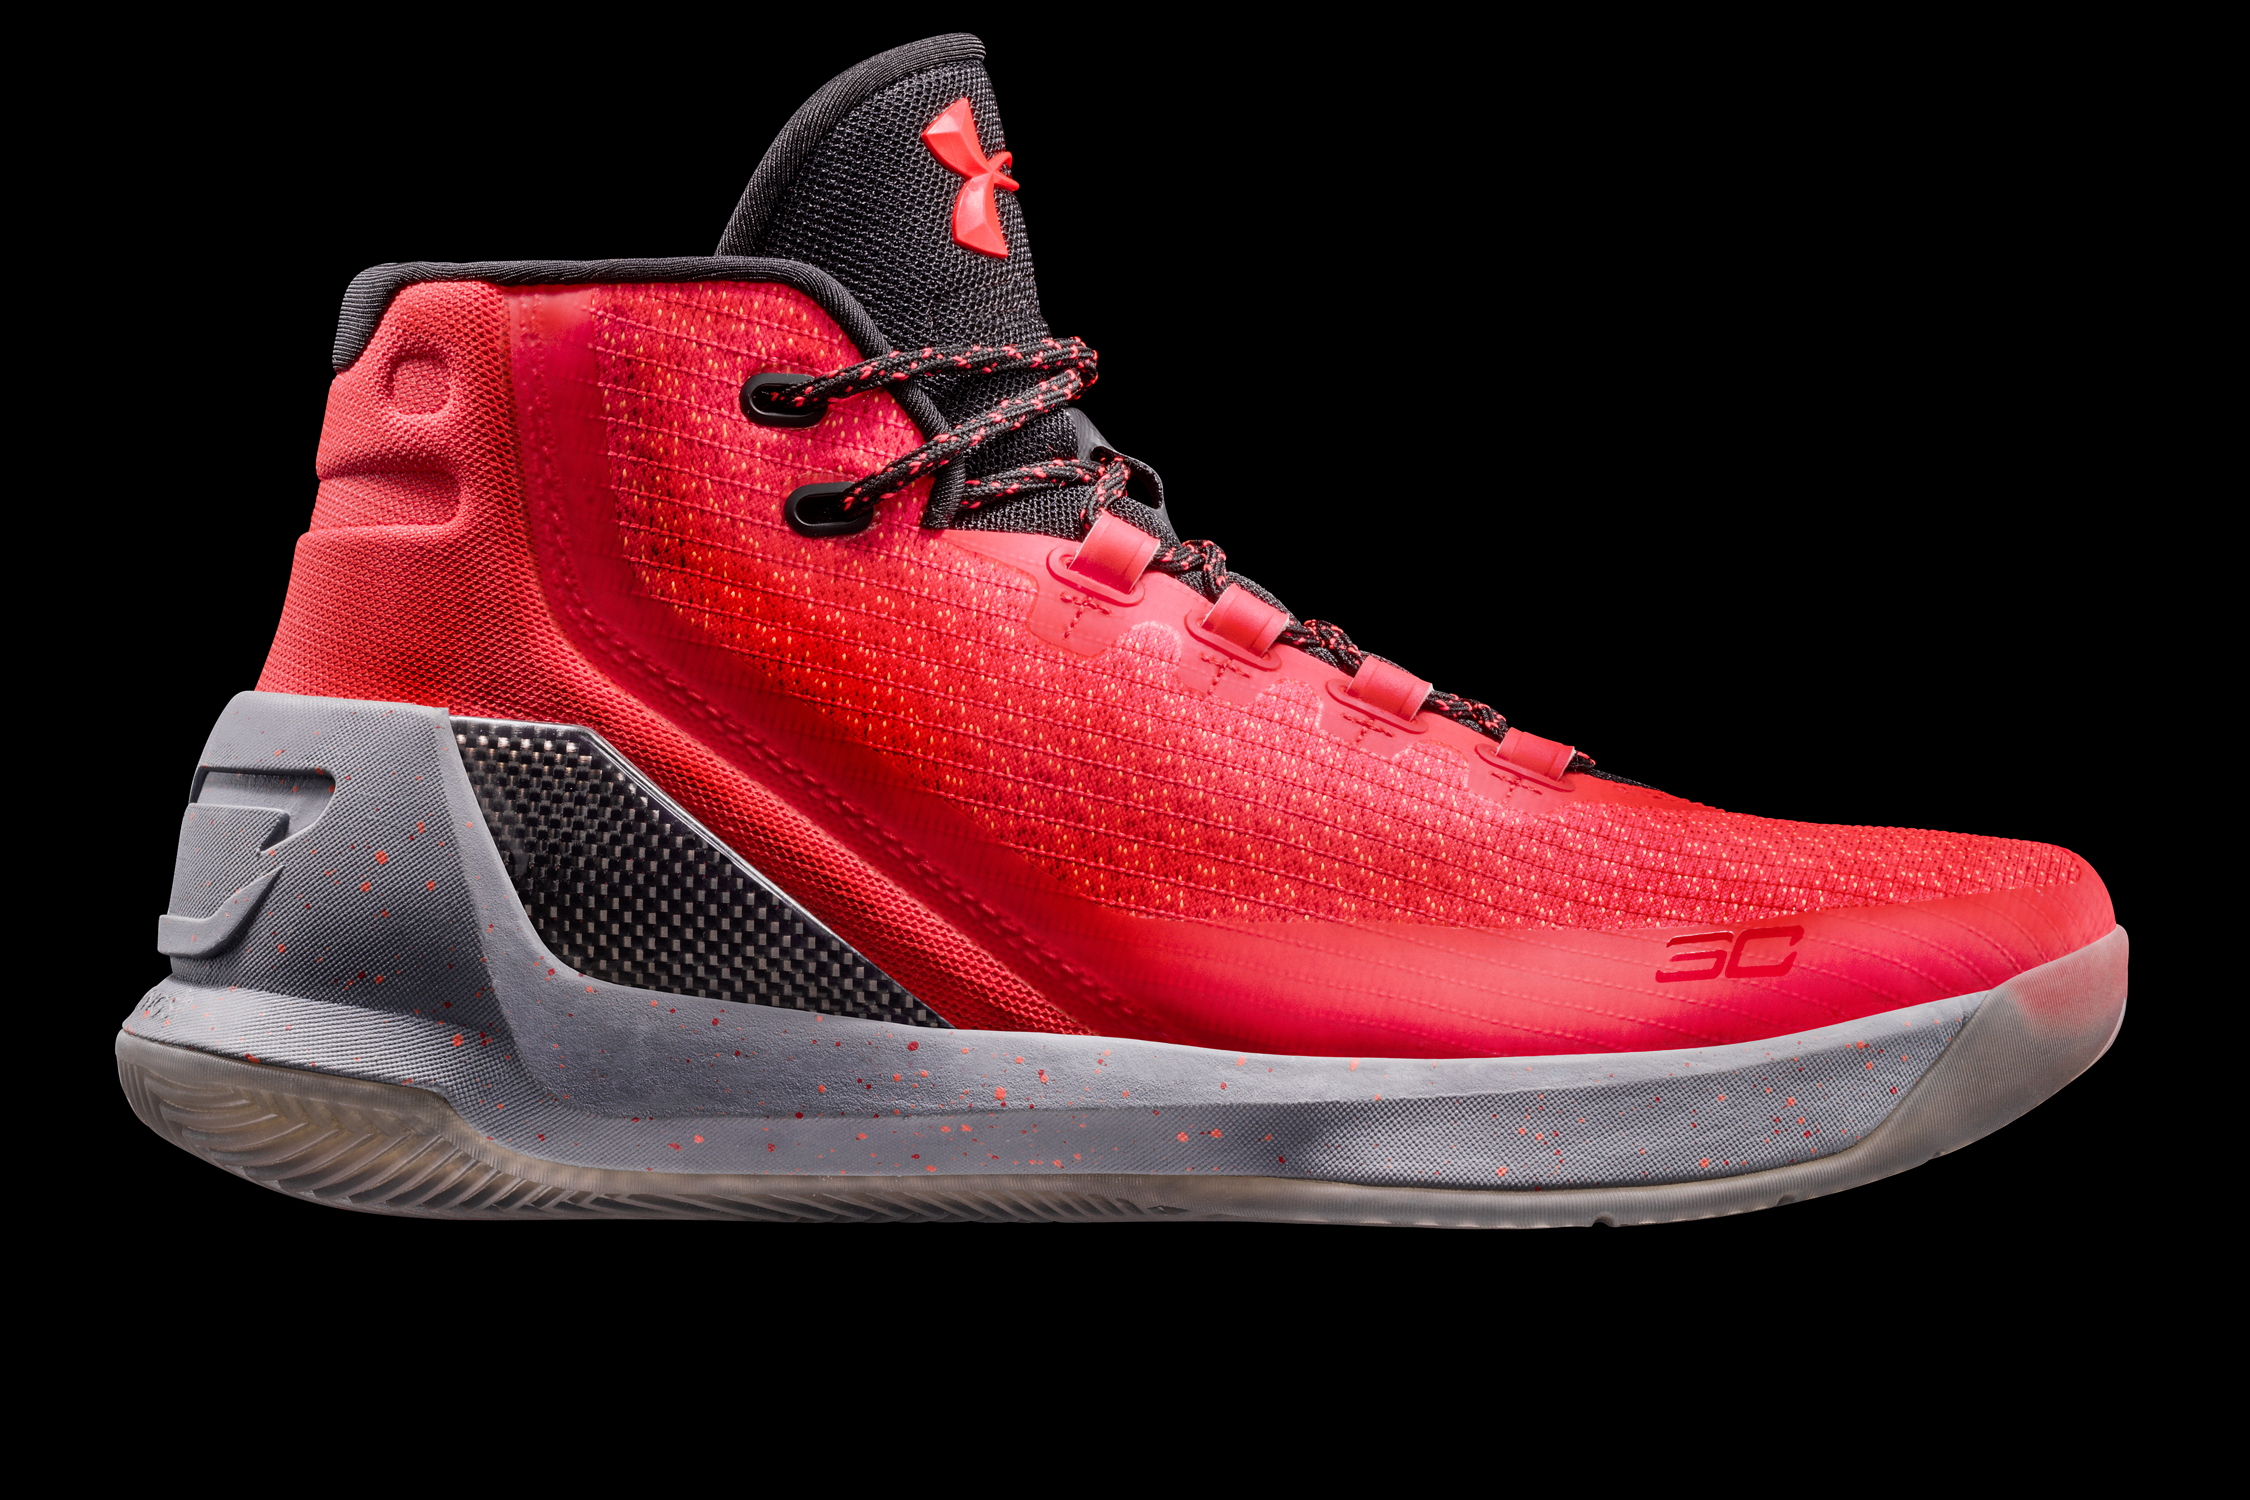 Our best guess for Stephen Curry's Christmas Day shoe is this 'Red Hot Santa' colorway.